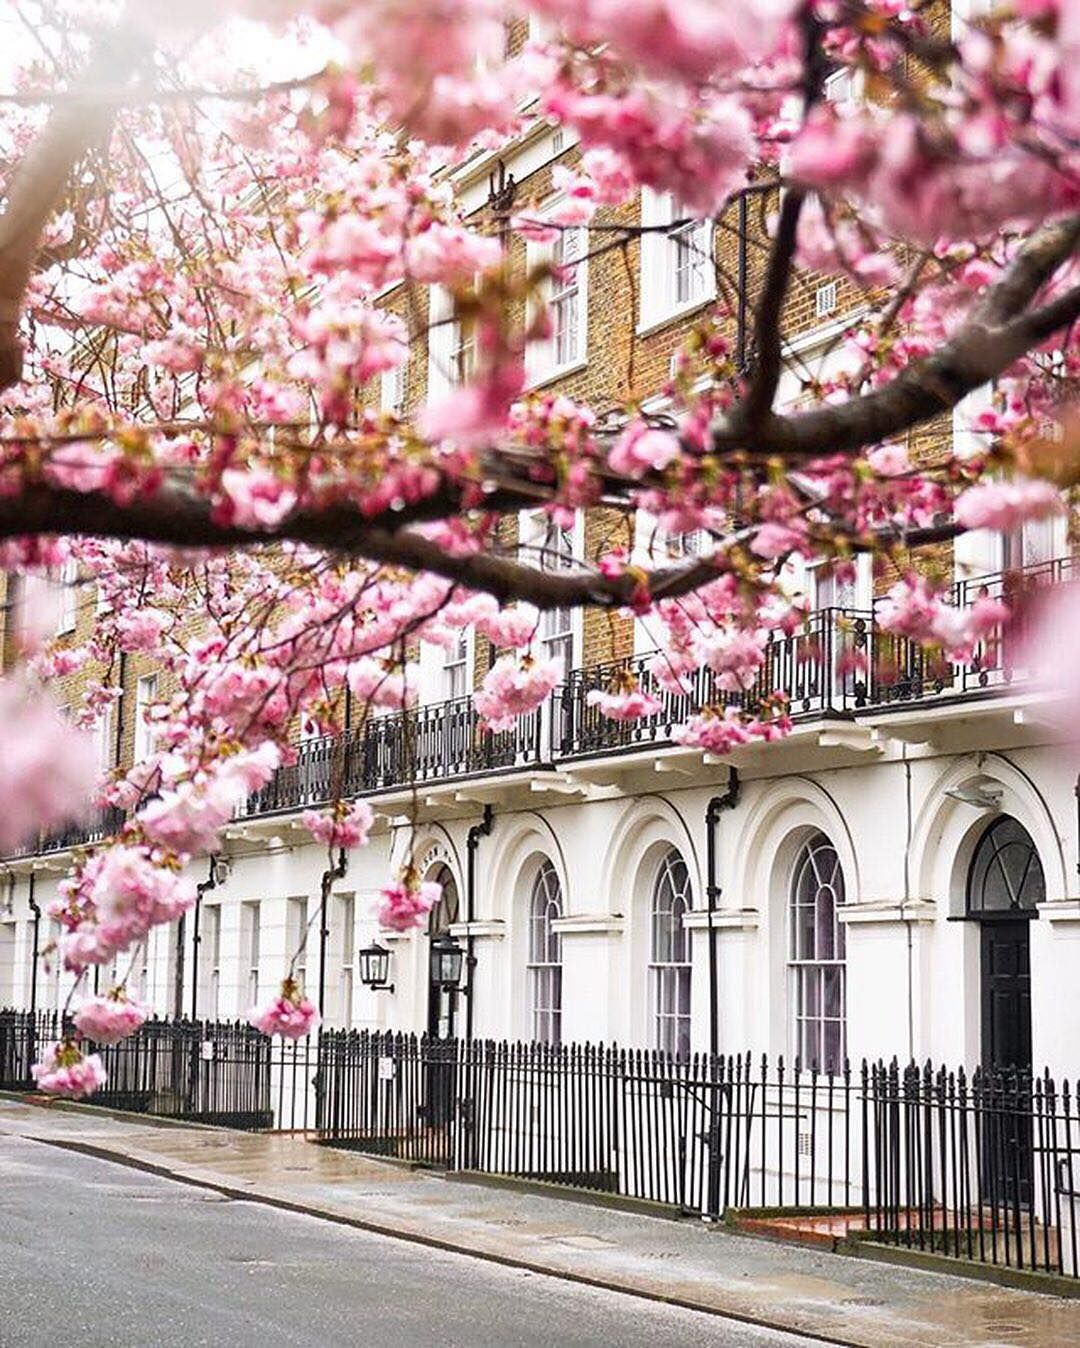 So You Re Finally In London You Ve Scheduled Your Days To The Minute You Re Racing Between Tube Stations Dod London City Guide London Dreams Beautiful London